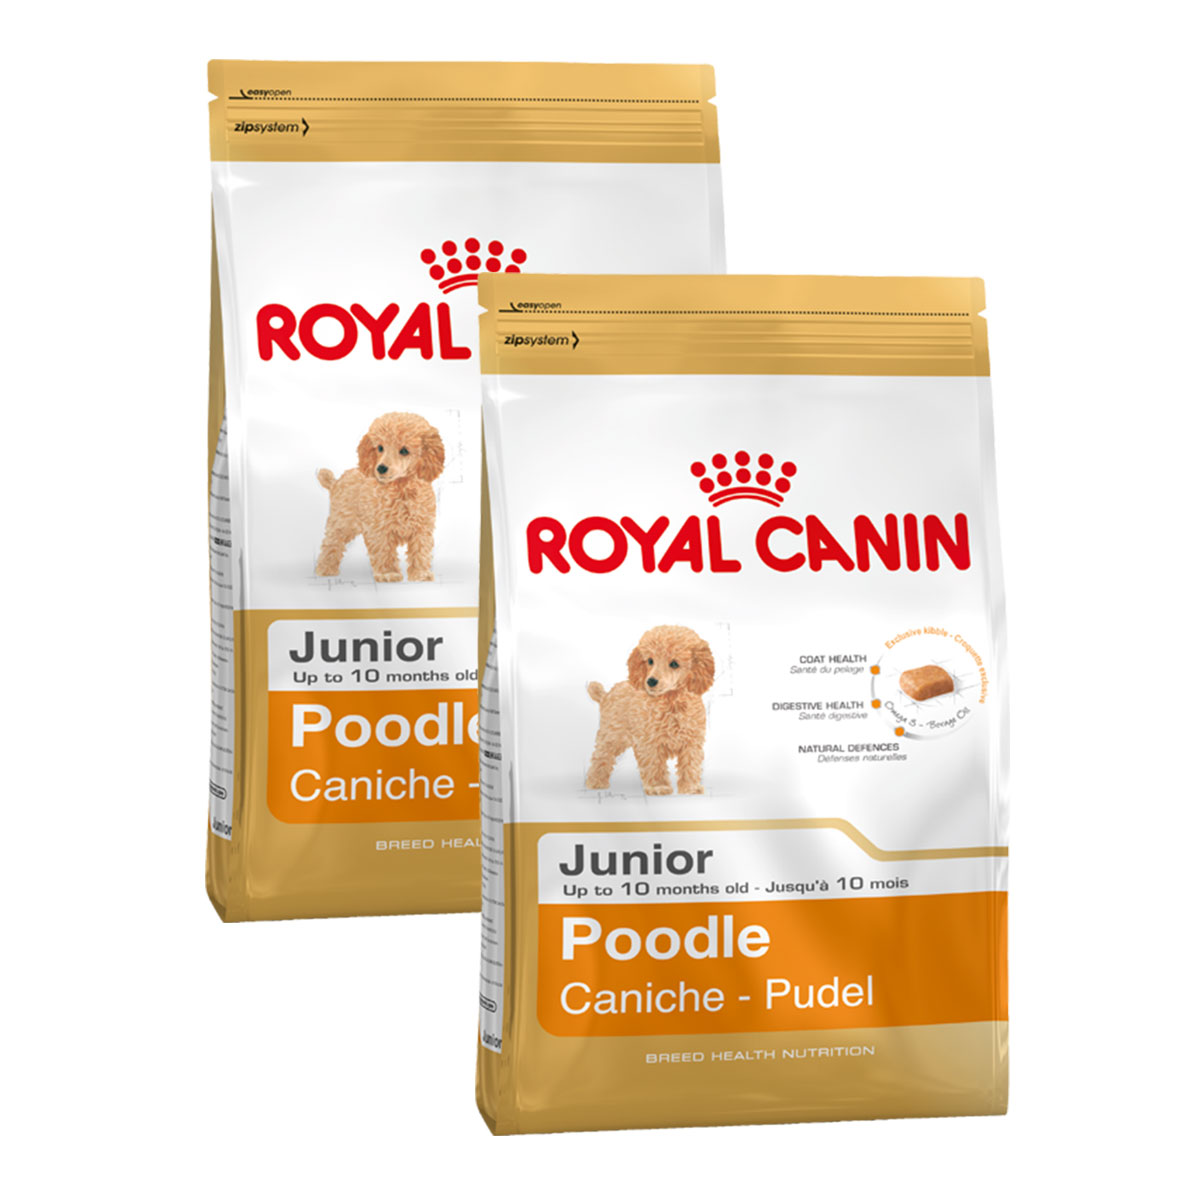 royal canin poodle junior g nstig kaufen bei zooroyal. Black Bedroom Furniture Sets. Home Design Ideas